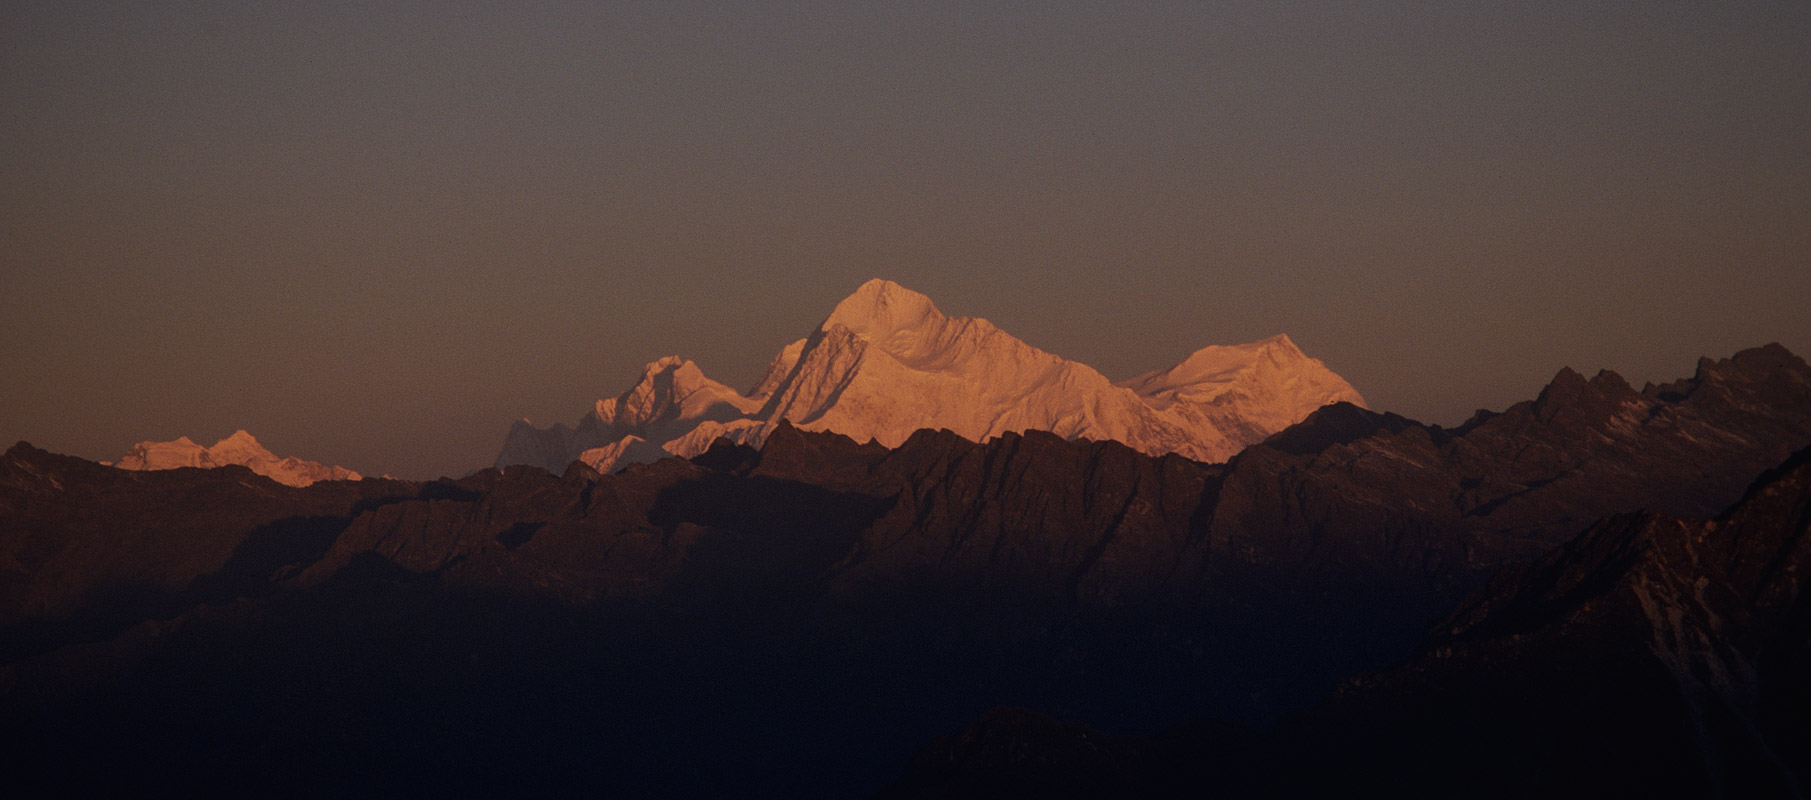 Pathi Bara is a 3700m top just north of Taplejung in Eastern Nepal. There is a tiny Shiva shrine there. At the end of our 1988 trek I spent a night sleeping at the shrine with a group of pilgrims. This is the view that greeted us early the next morning - sunrise light on Makalu, Lhotse and Chomolonzo.Canon A1, 135mm, Fuji RFP